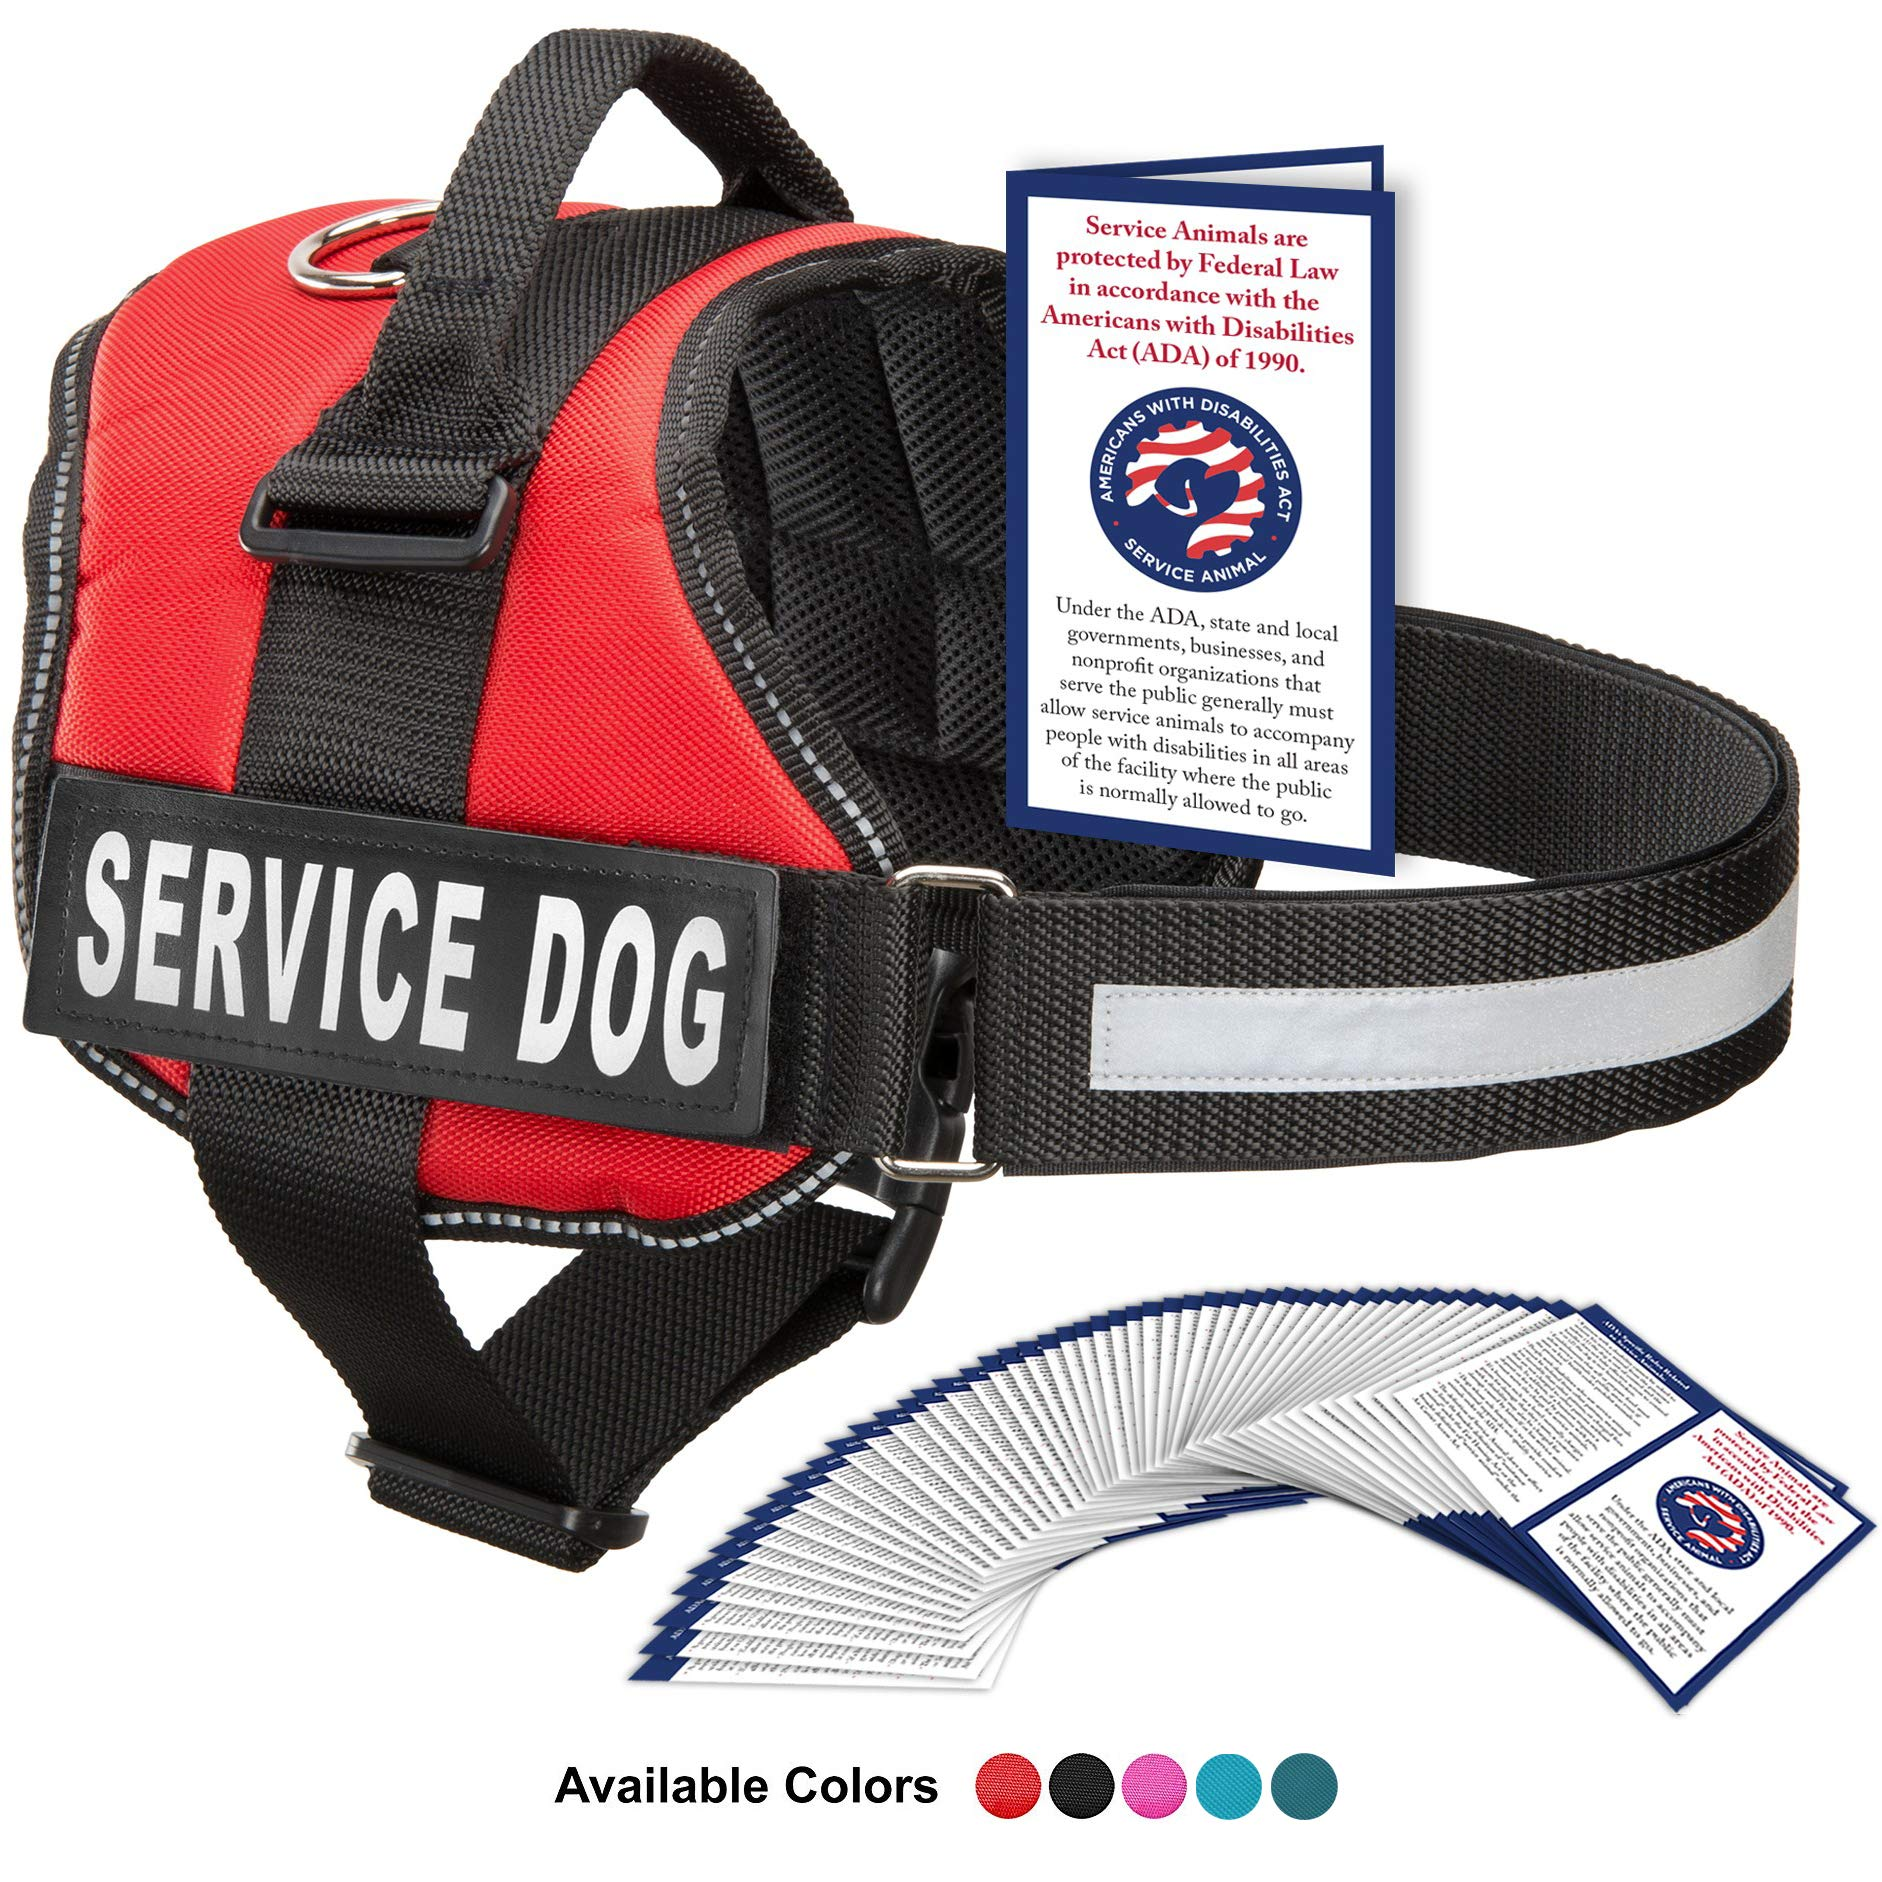 Service Dog Vest With Hook and Loop Straps and Handle - Harness is Available in 8 Sizes From XXXS to XXL - Service Dog Harness Features Reflective Patch and Comfortable Mesh Design (Red, Large) by Industrial Puppy